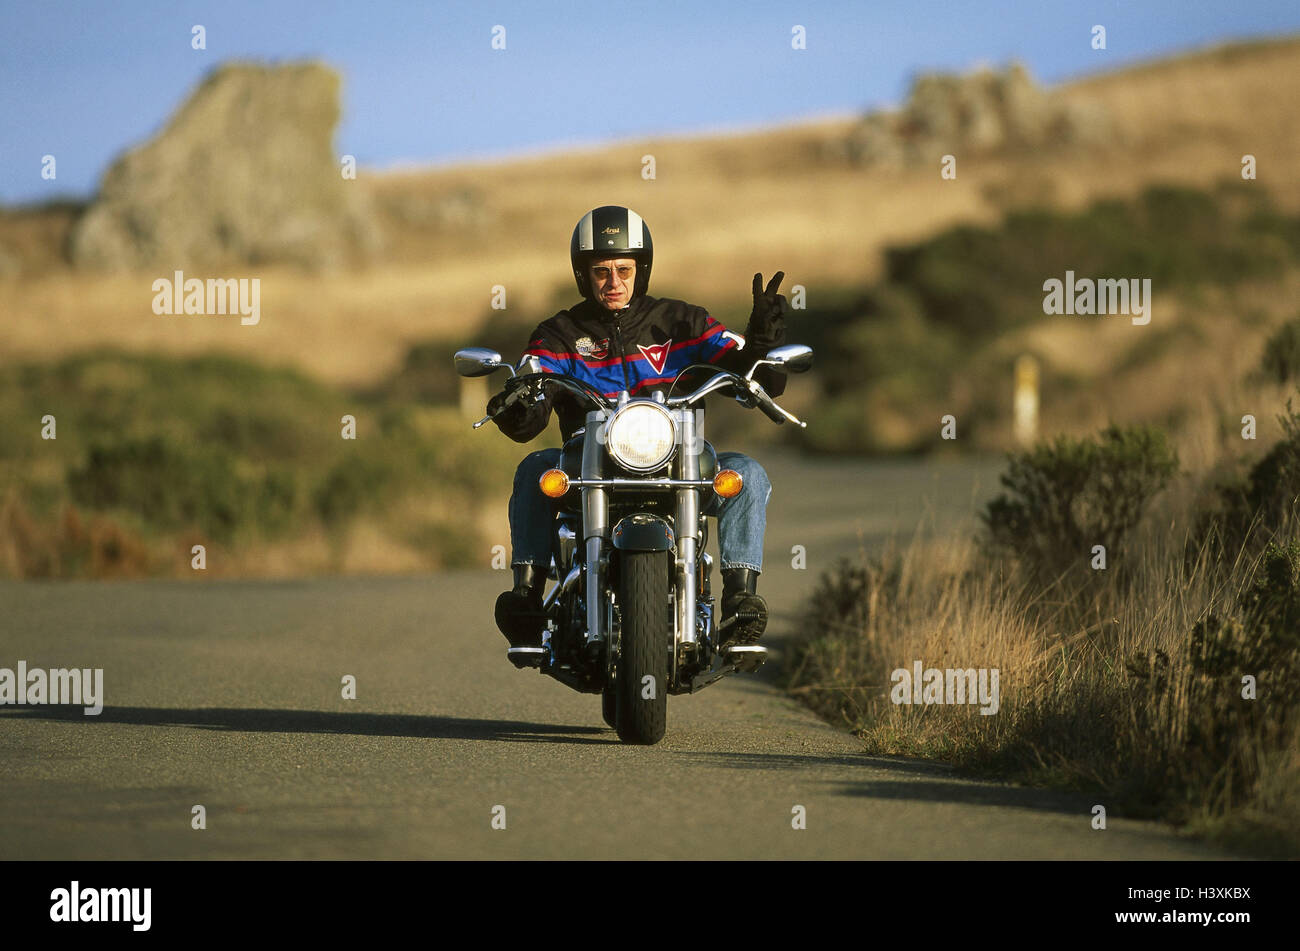 Chopper driver with Yamaha on mountain road - Stock Image